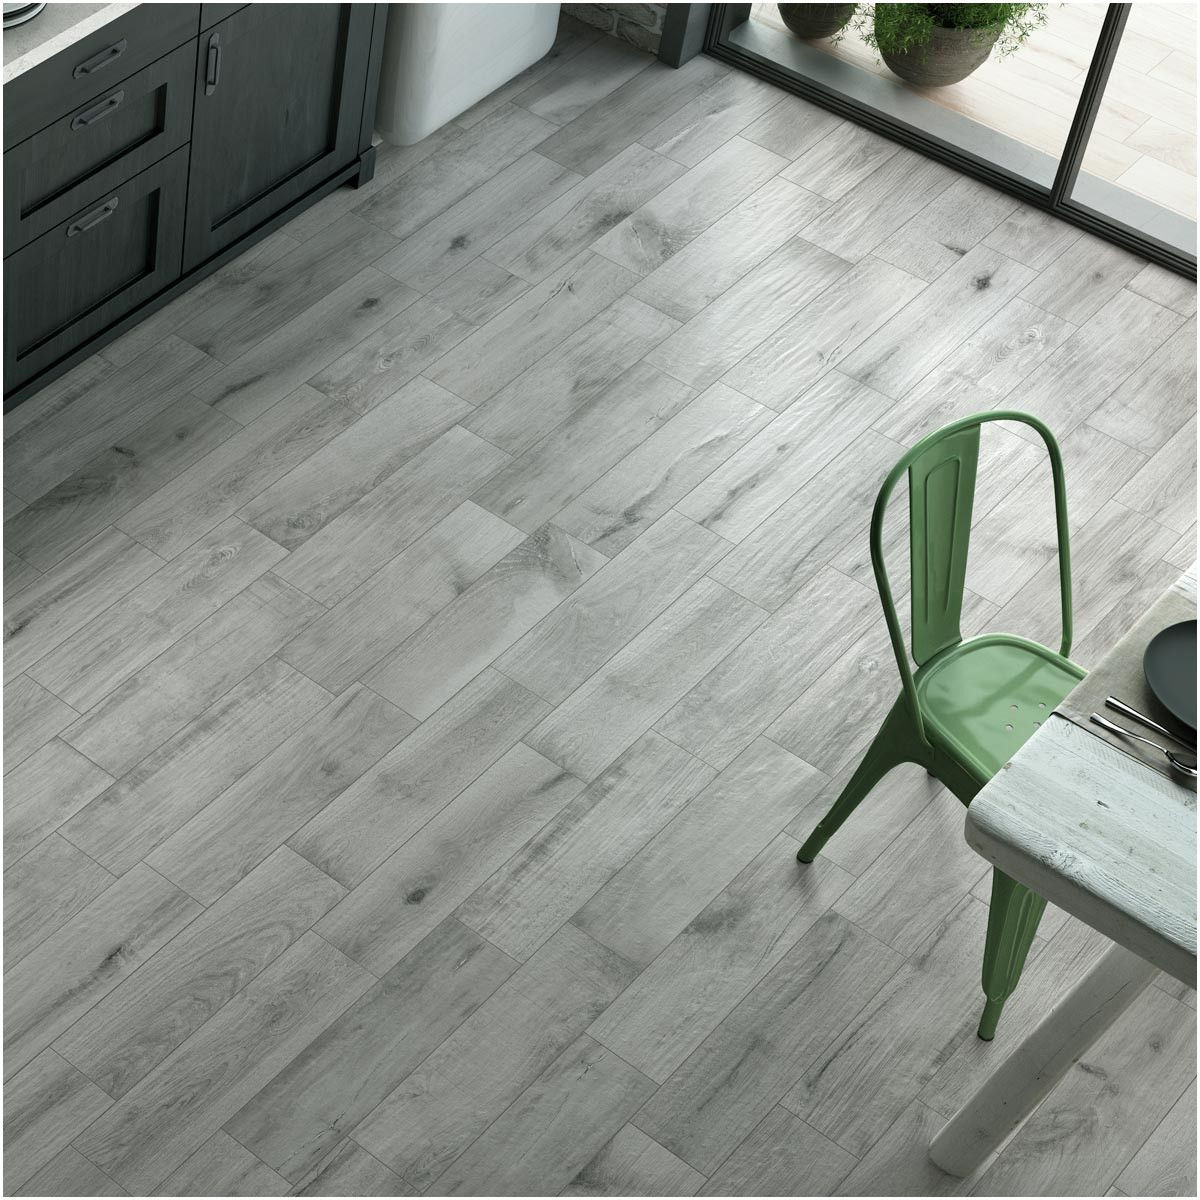 hardwood looking tile flooring of porcelain floor tiles pros and cons od grain tile bathroom wood with porcelain floor tiles pros and cons od grain tile bathroom wood shower no grout porcelain pros